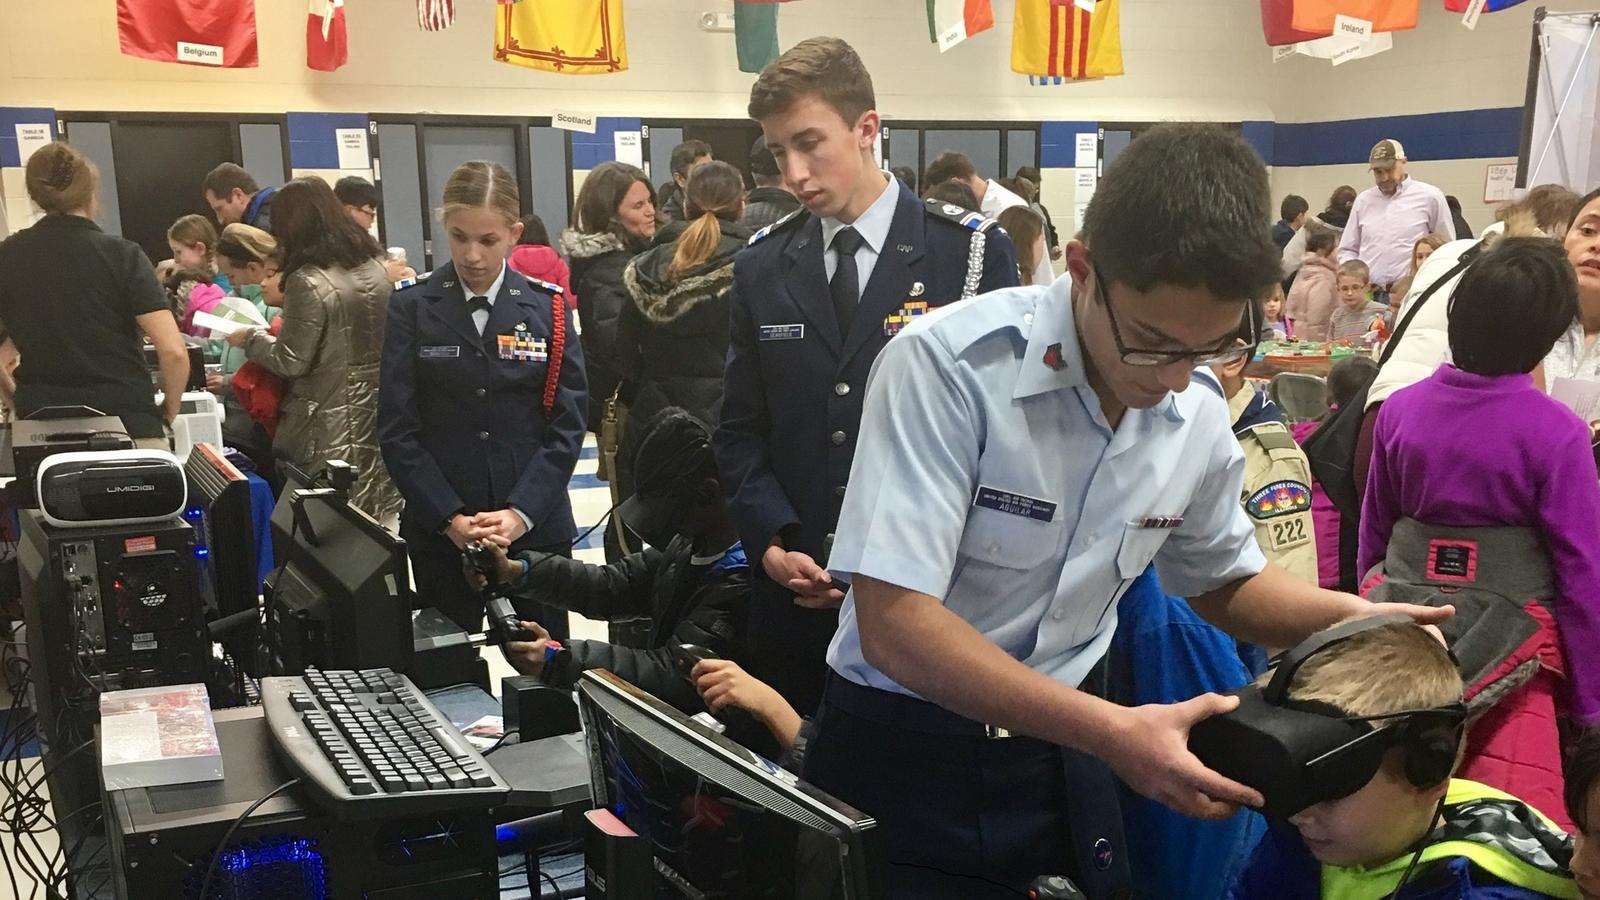 a3b7a248d079 Members of the Civil Air Patrol s Colonel Shorty Powers Squadron are  putting virtual reality technology in the hands of youth in their community  in the ...